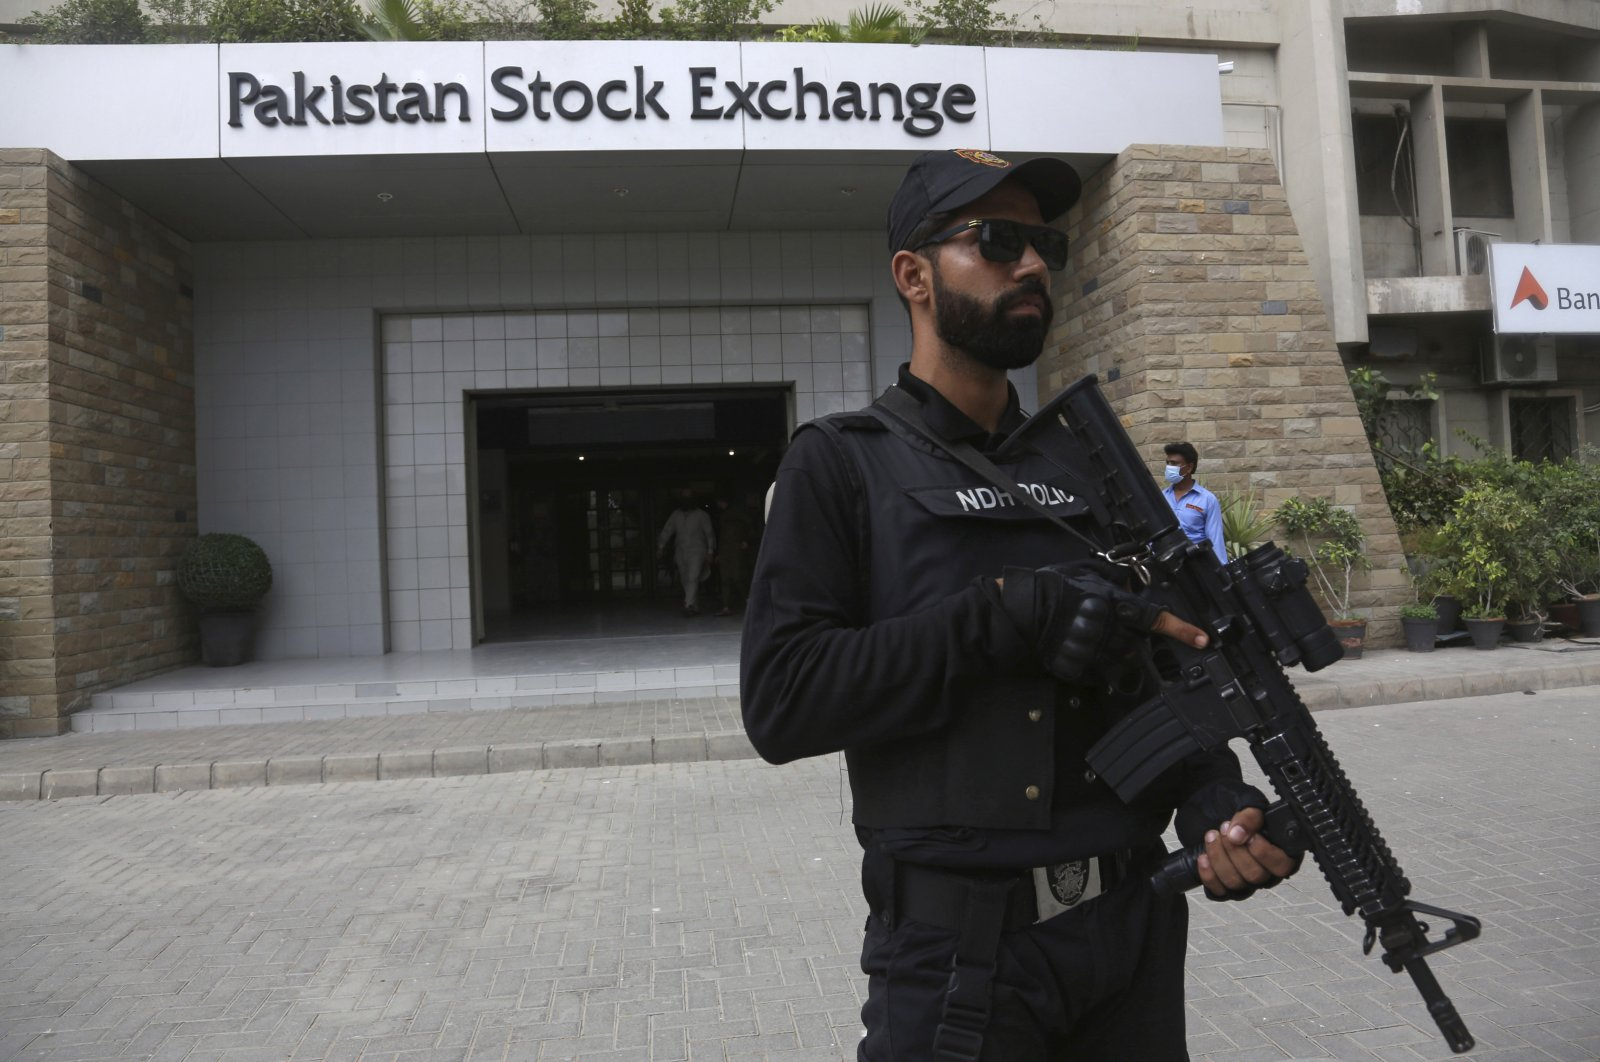 A police commando stands guard outside the Pakistan Stock Exchange after an attack in Karachi, Pakistan, June 29, 2020. (AP Photo)